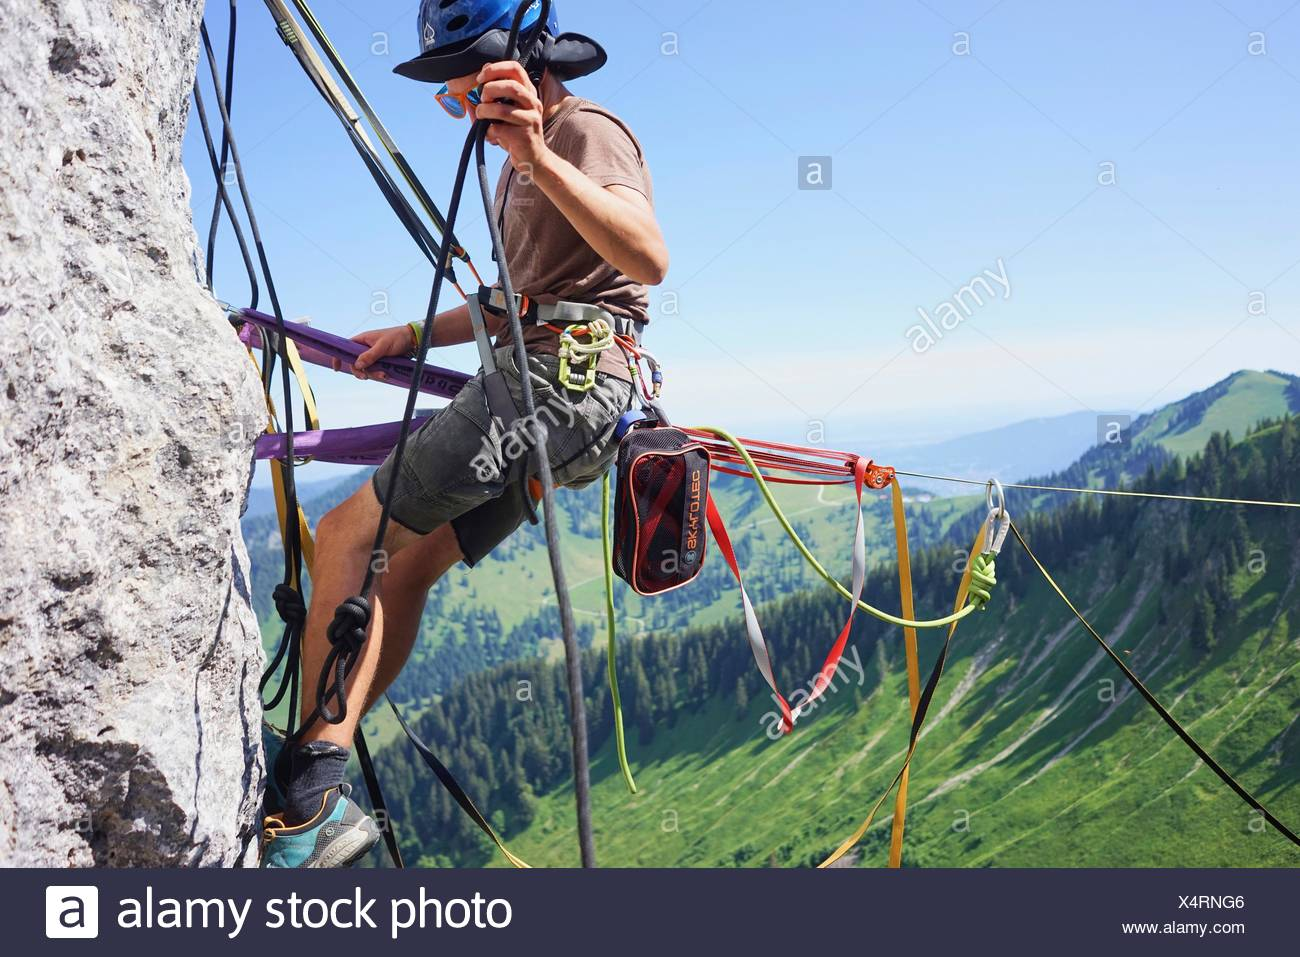 man at anchor point of highline slackline, checking safeguard, in Bavarian alps, near mountain Blankenstein, south of Germany - Stock Image